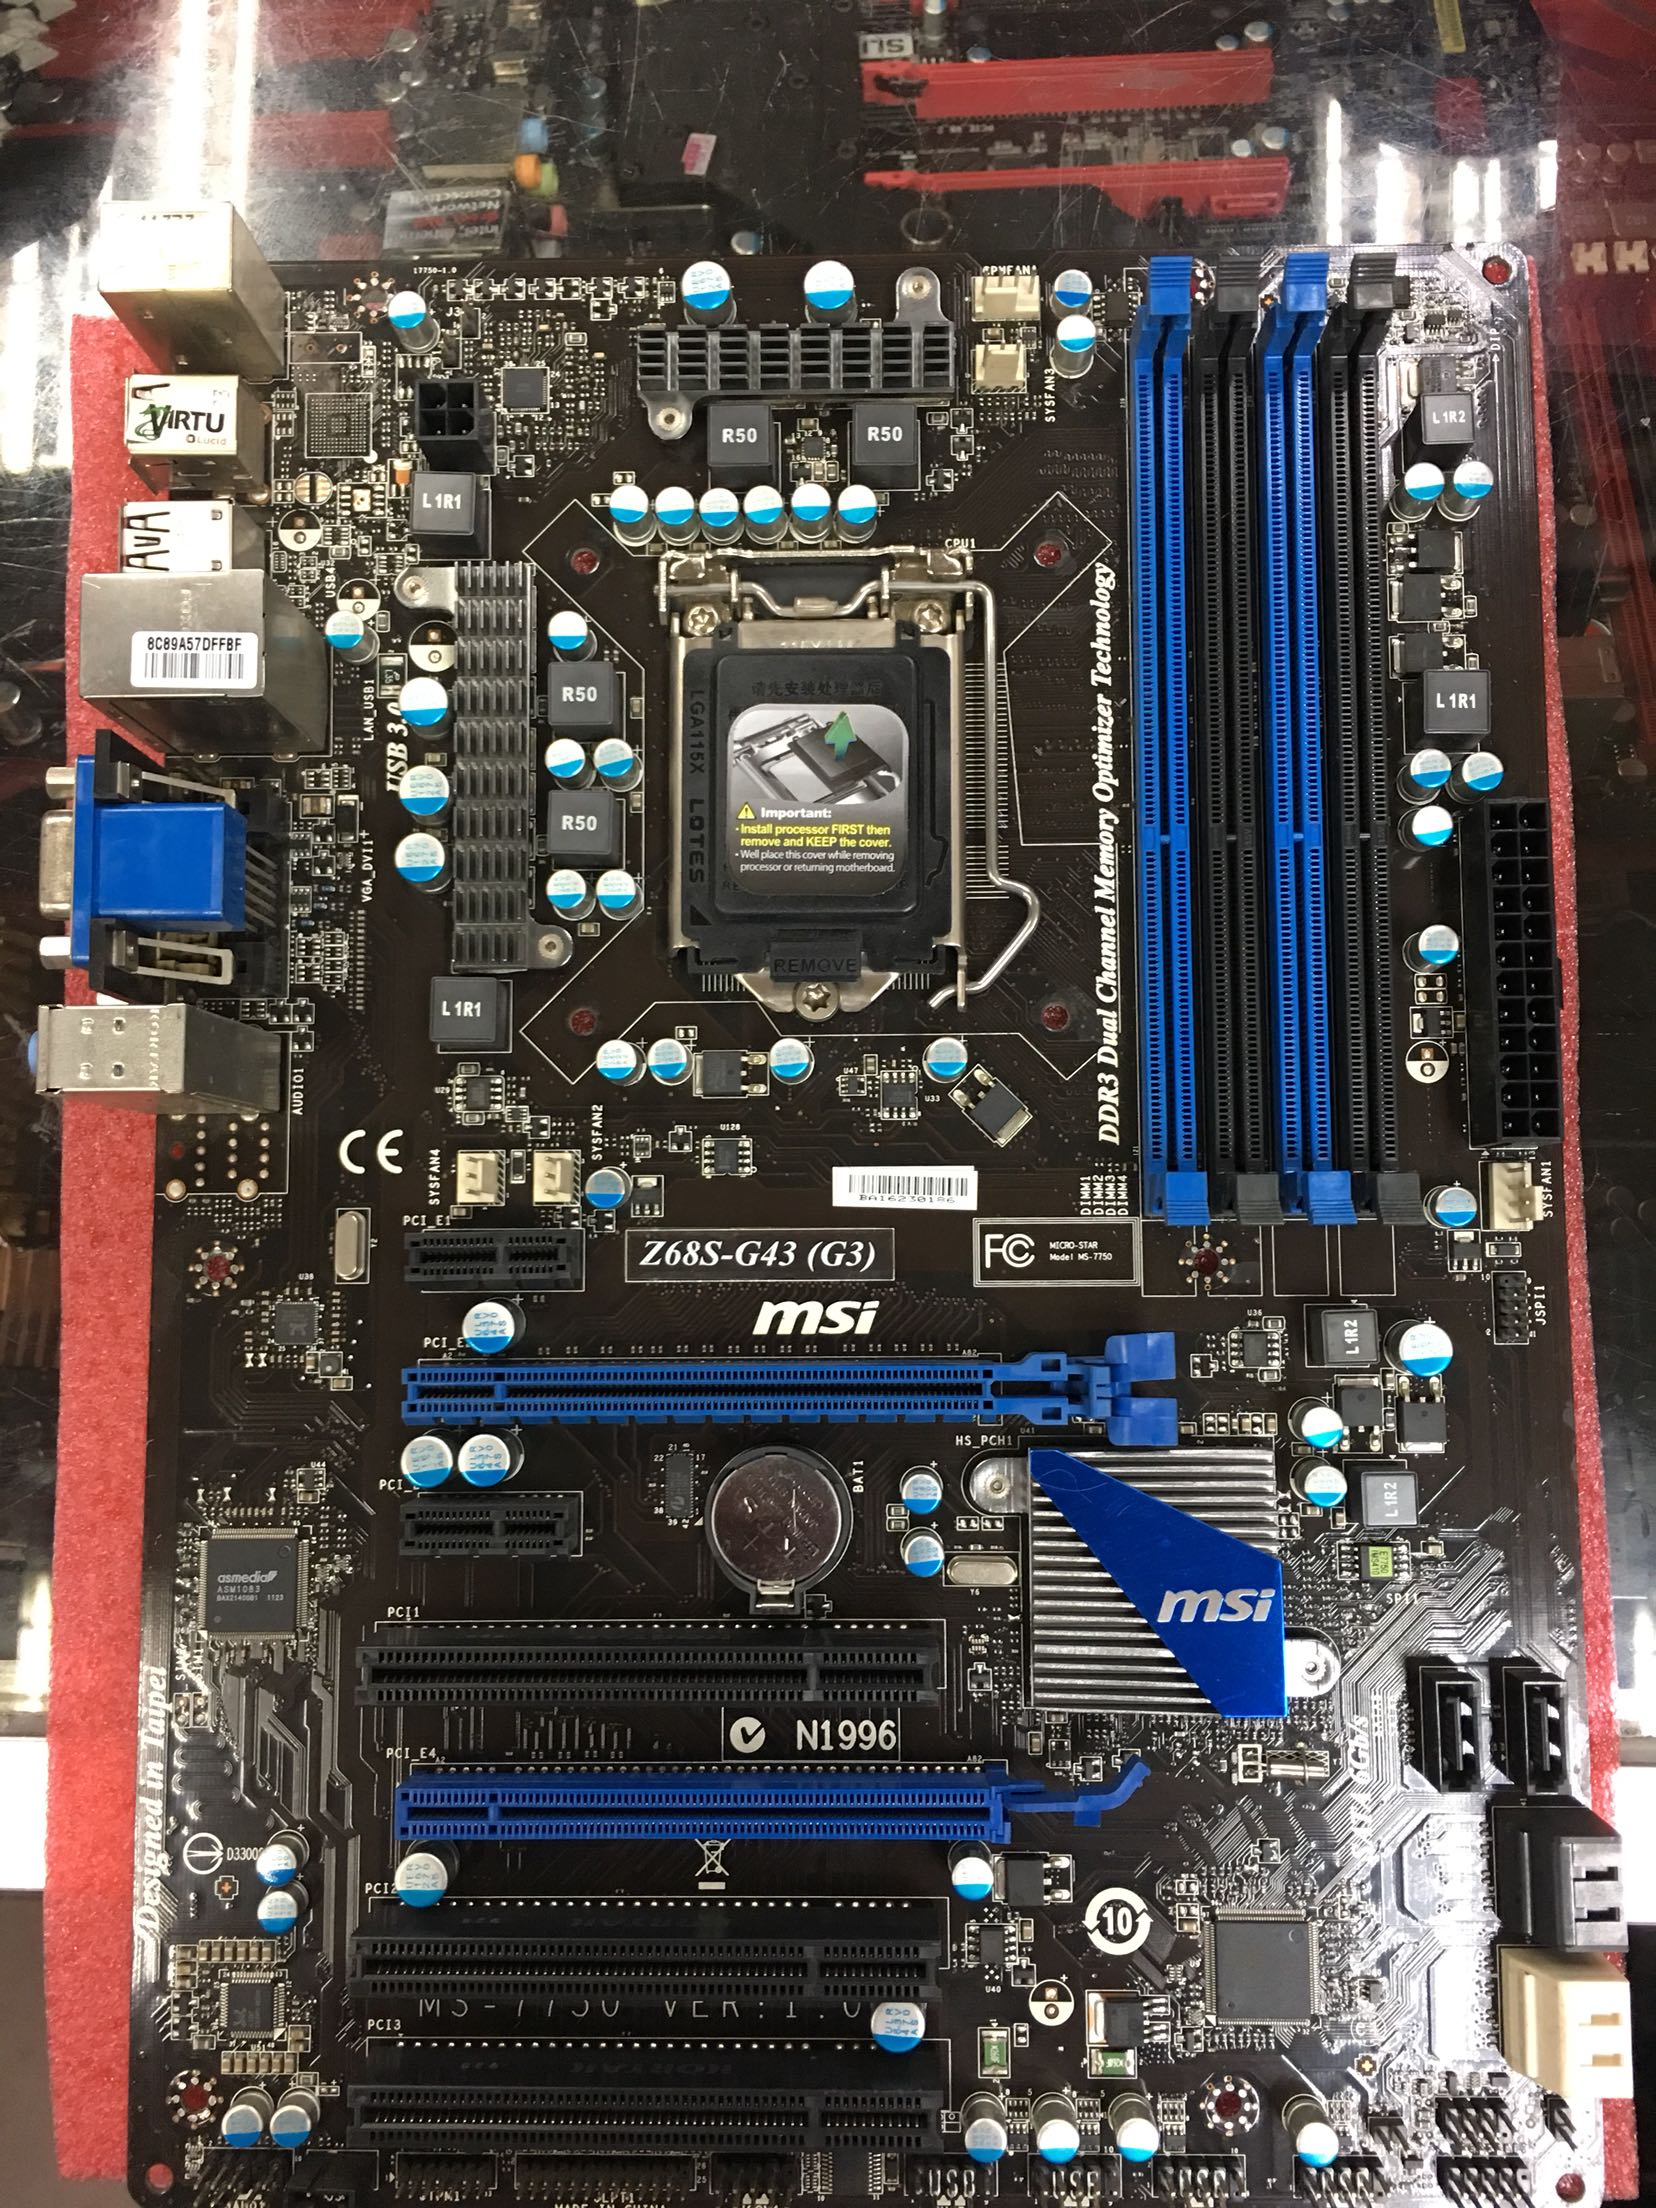 MSI Z68S-G43 (G3) 1155CPU Z68 series  80%-90%new